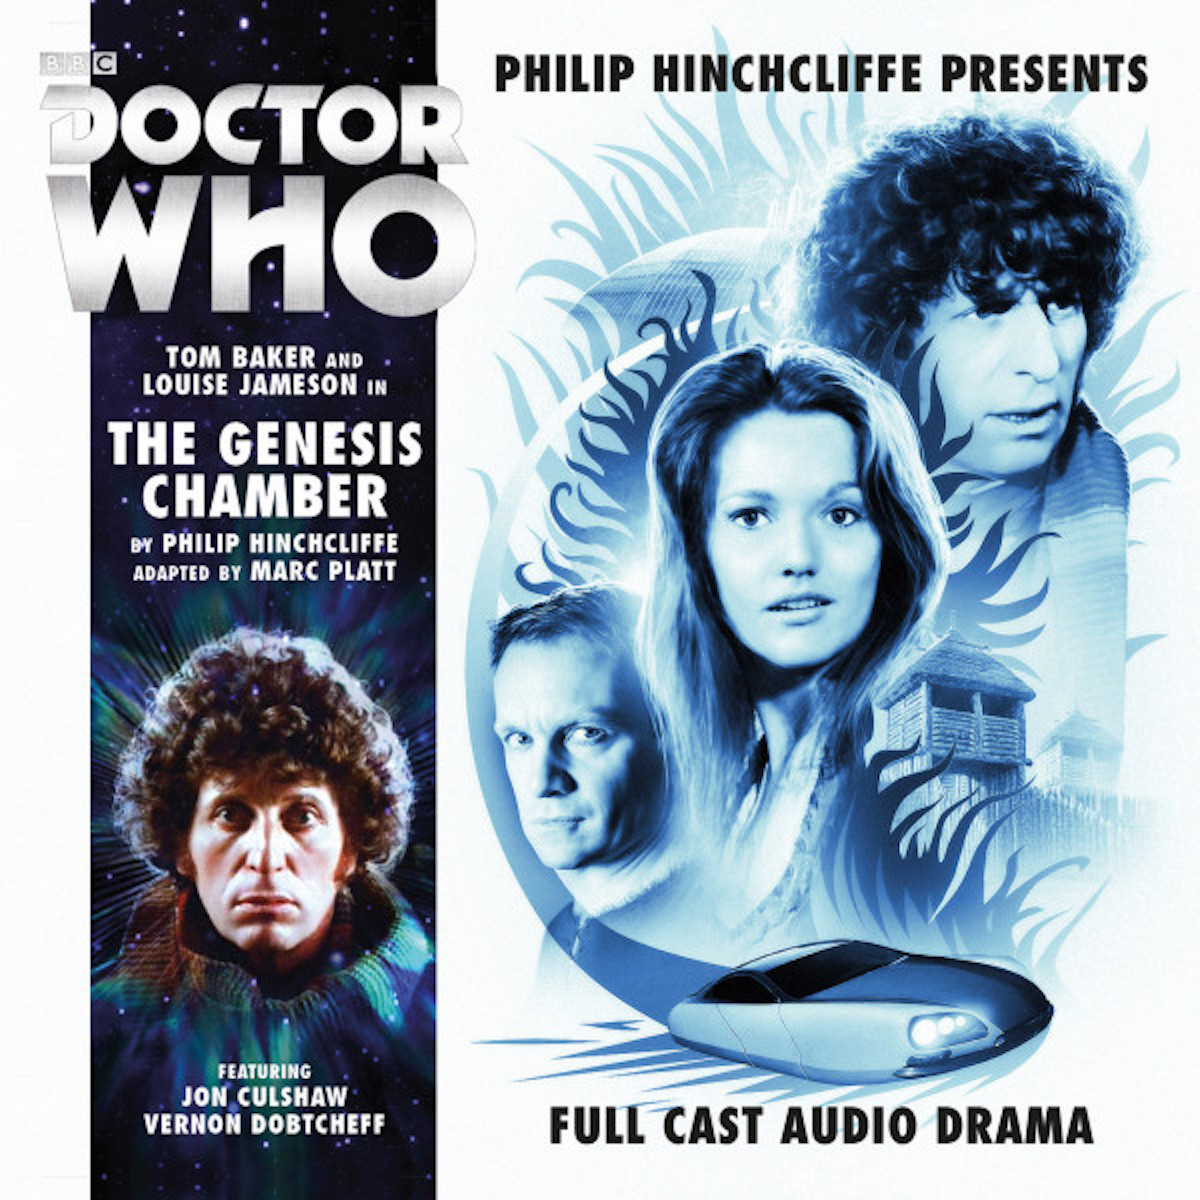 Philip Hinchcliffe Presents Volume 2: The Genesis Chamber